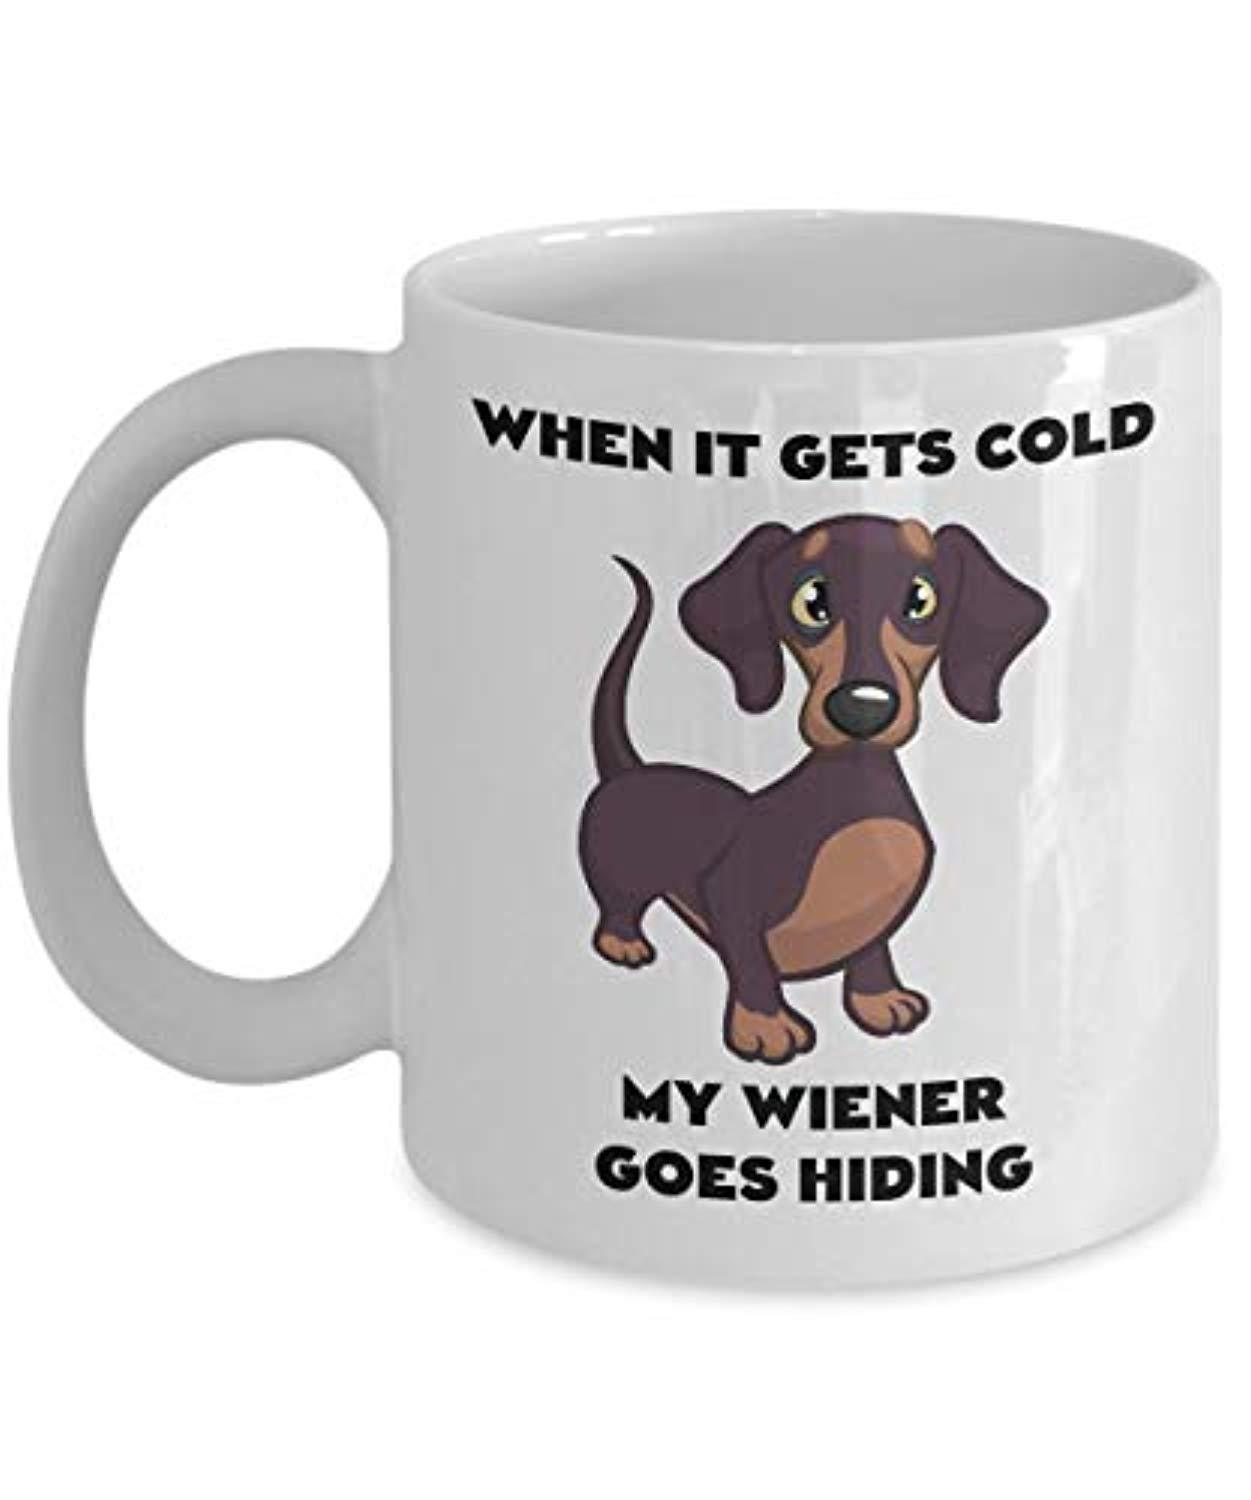 When It Gets Cold My Weiner Goes Hiding Mug Funny Dachshund Dog Coffee Cup